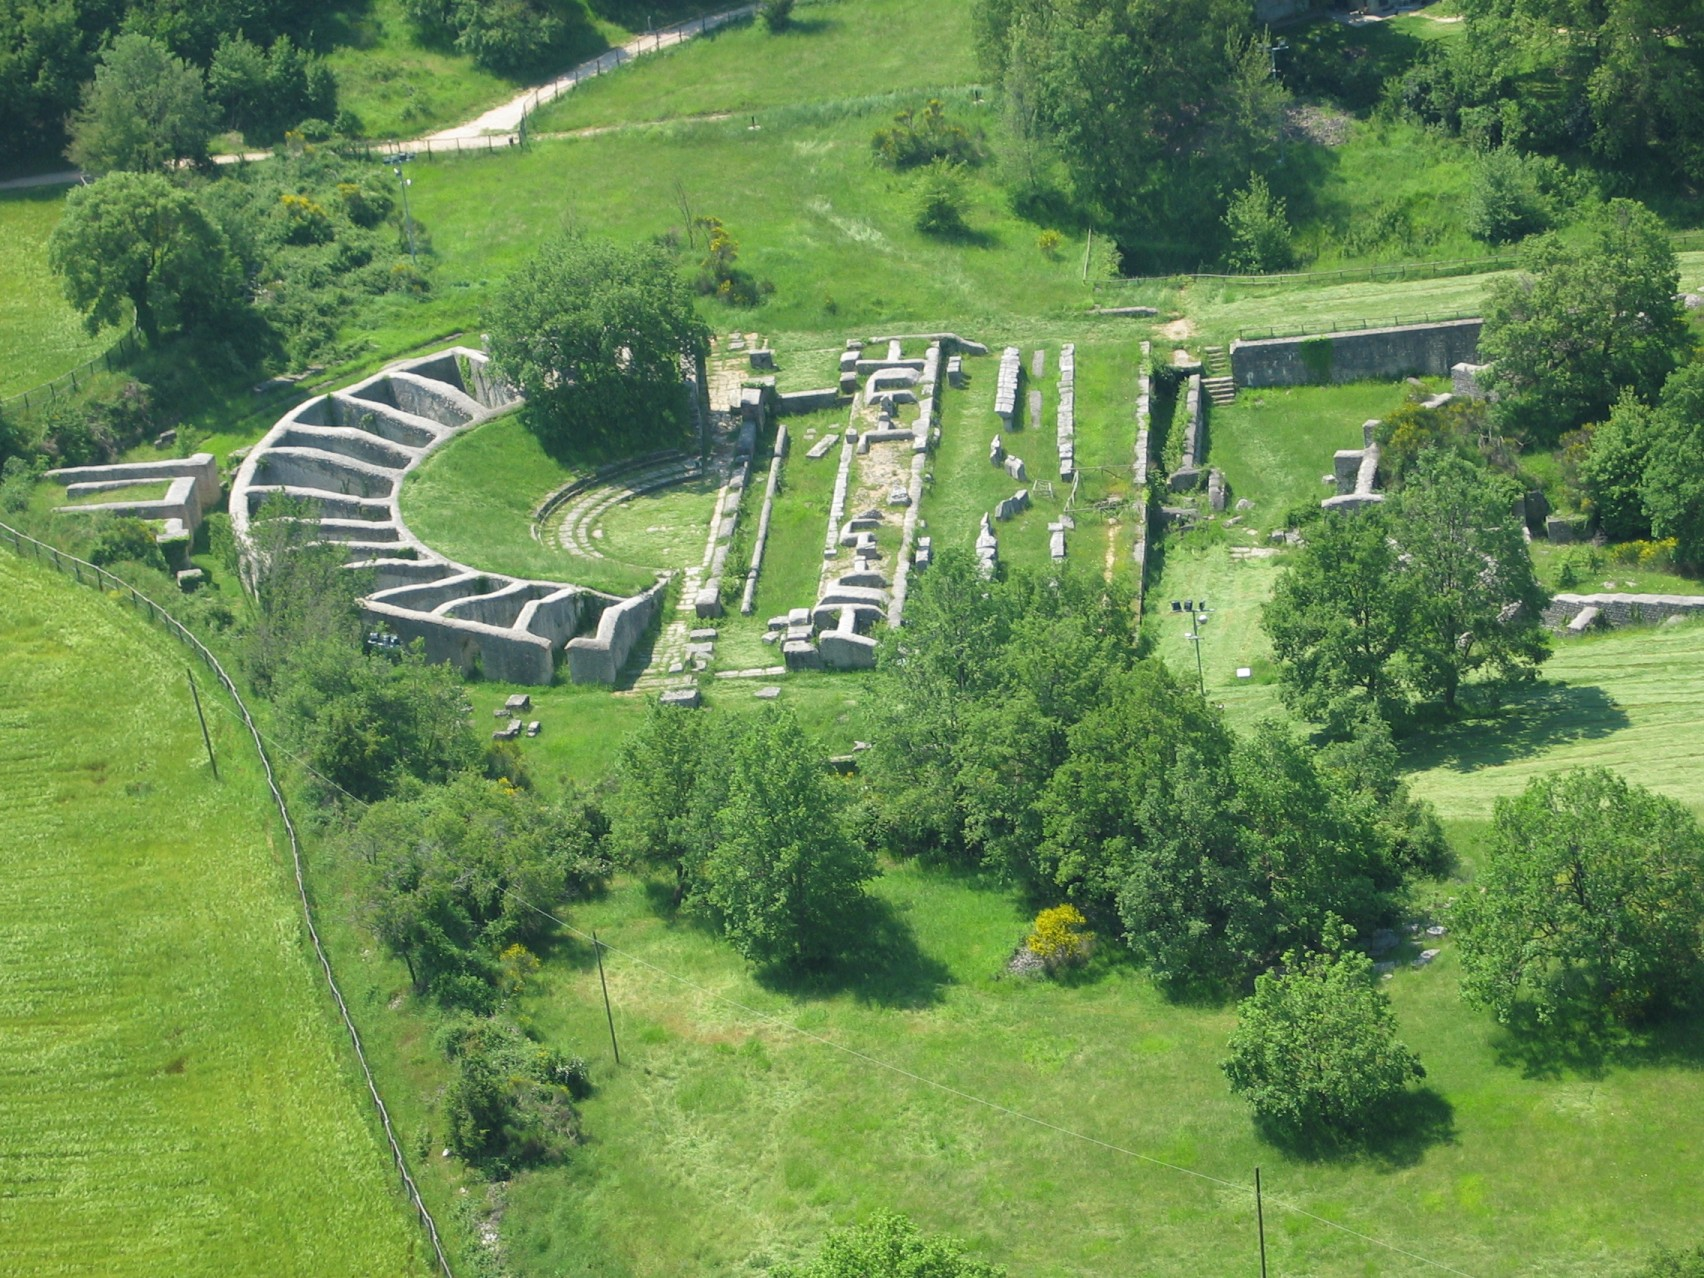 The Roman Amphitheatre in Carsulae